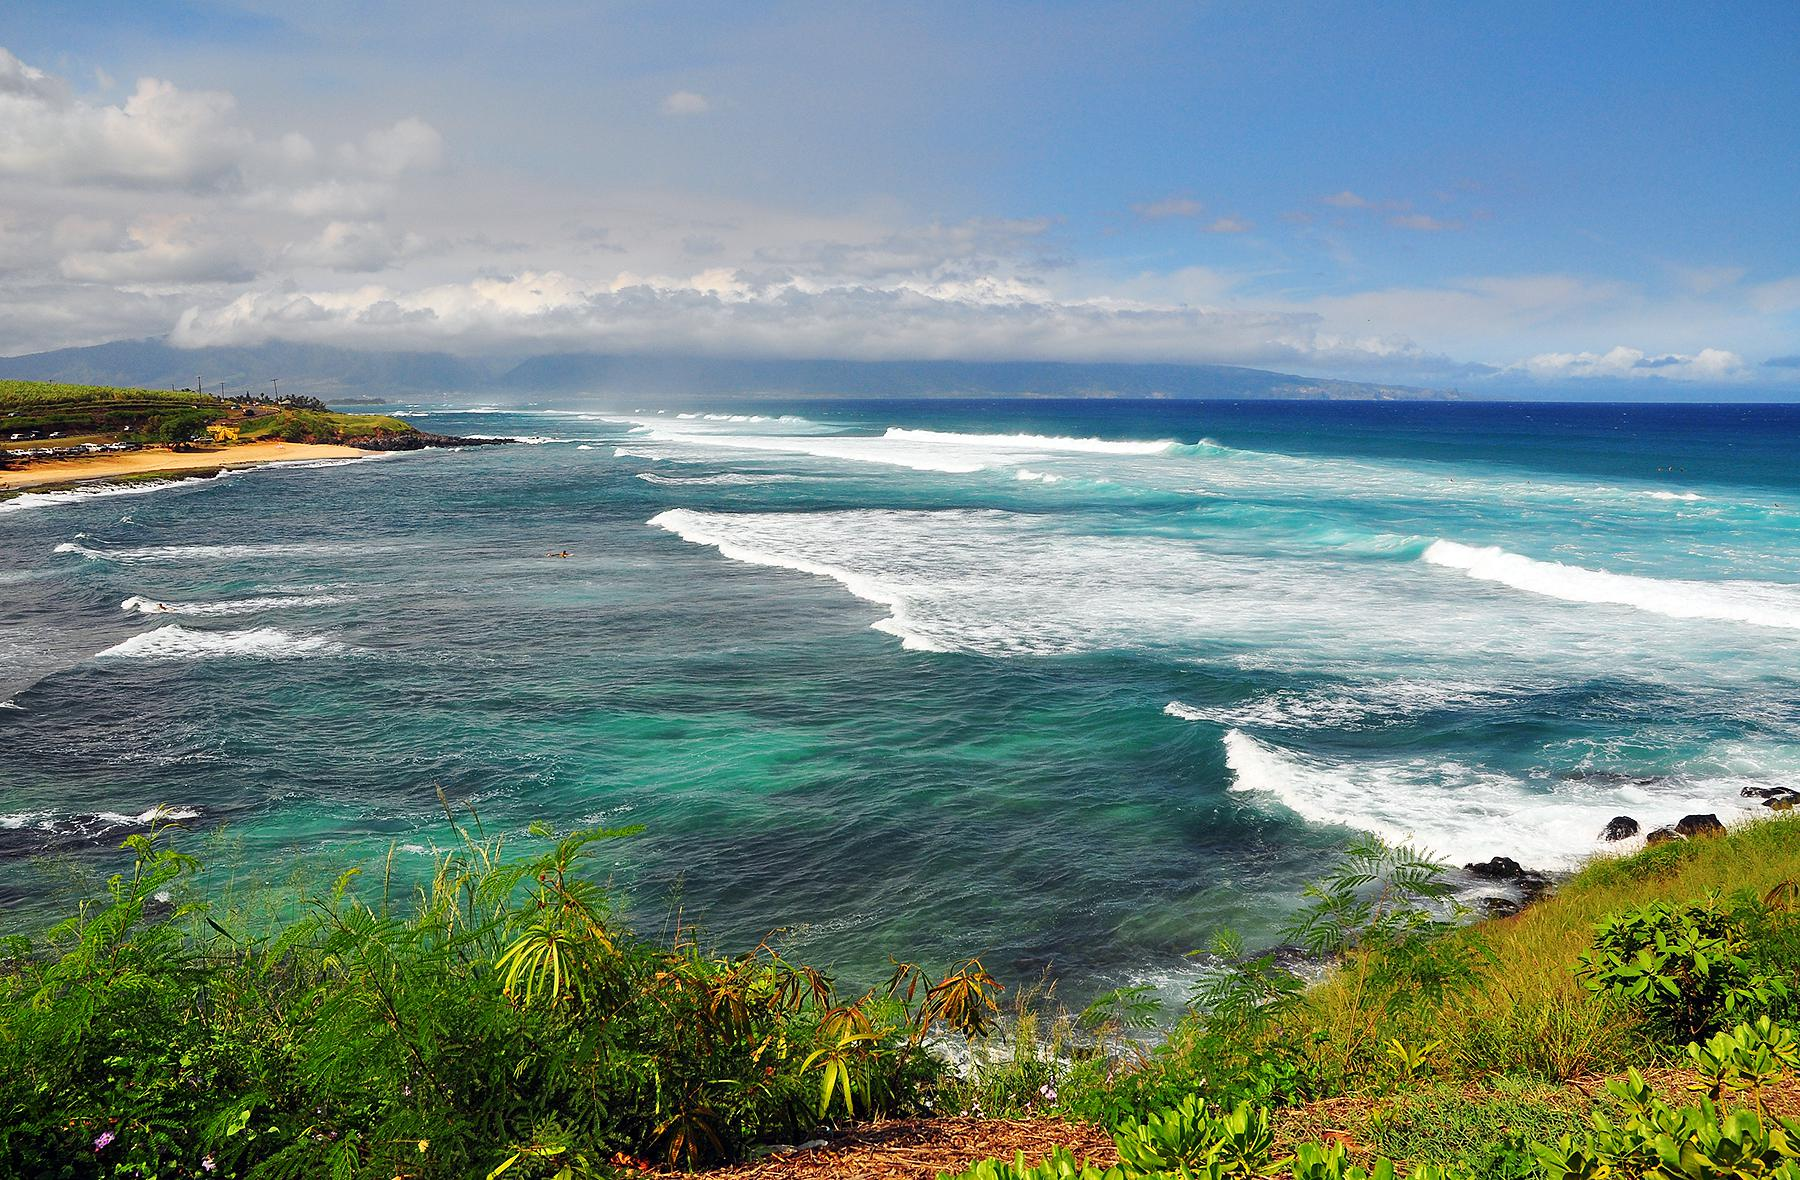 """Maui North Shore<br/>Photo <a href=""""//creativecommons.org/licences/by-nc-nd/3.0/"""" class=""""cc-small"""" target=""""_blank""""><img typeof=""""foaf:Image"""" class=""""image-style-none"""" src=""""https://i.creativecommons.org/l/by-nc-nd/3.0/80x15.png"""" width=""""80px"""" height=""""15px"""" alt=""""Creative Commons Licence"""" /></a> <a href=""""http://www.flickr.com/photos/28638201@N00/4034665025"""">Dixon Tam</a>"""